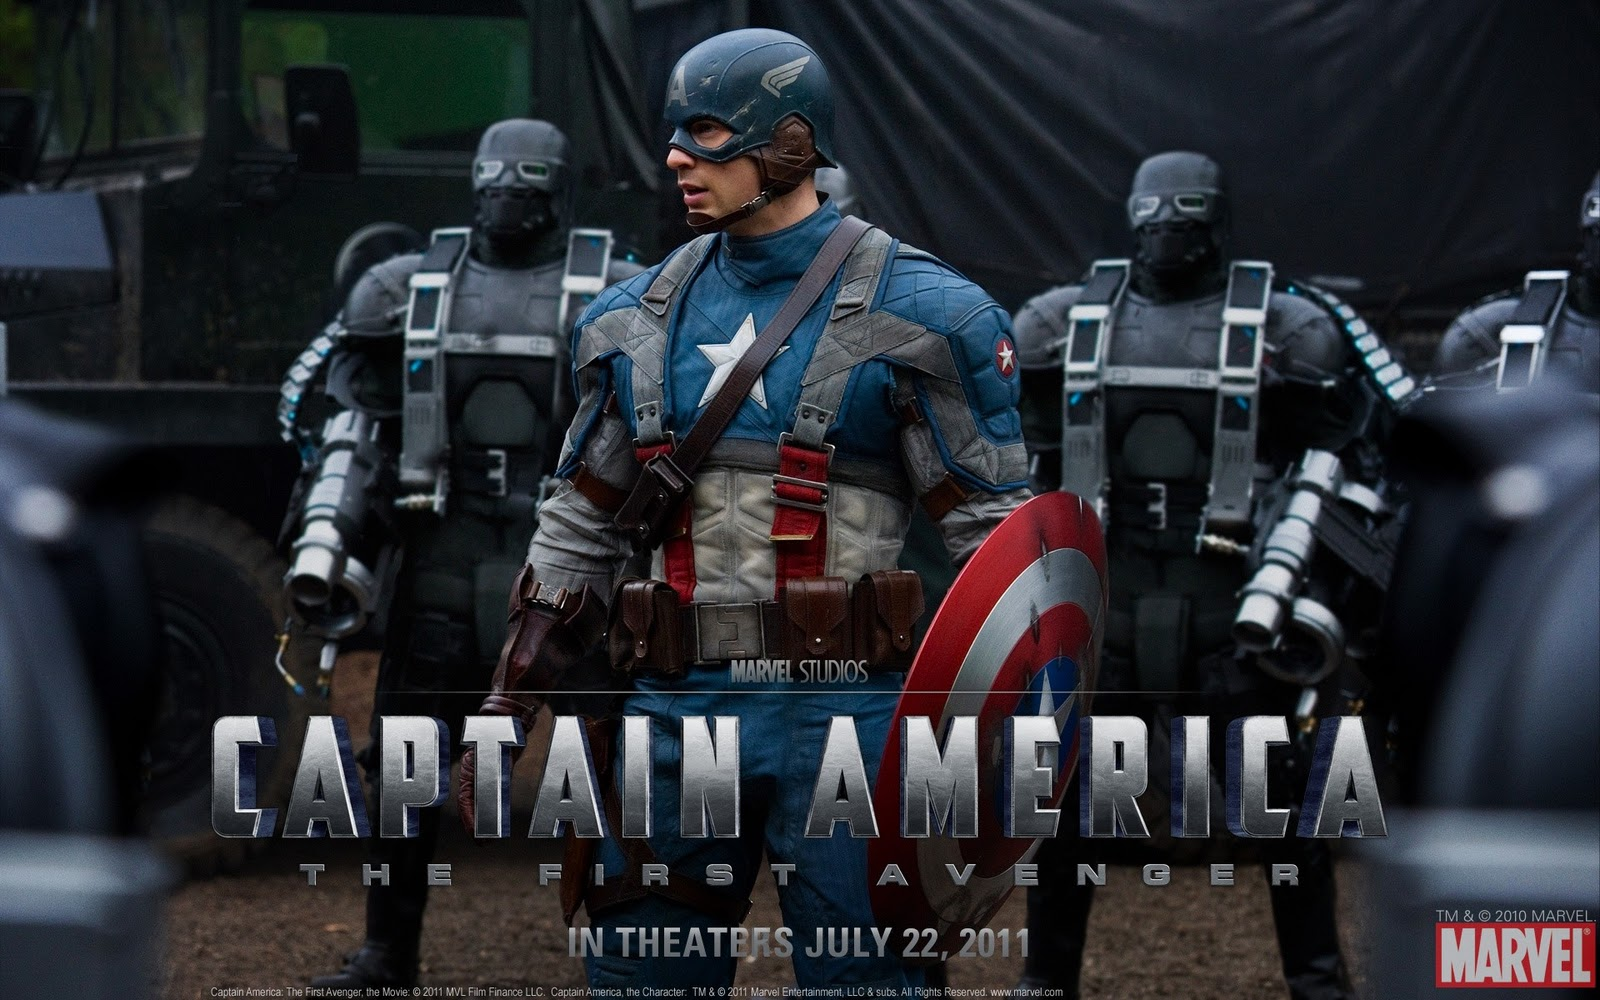 http://2.bp.blogspot.com/_gP0YbyEAqFY/TUC0dJ2gMtI/AAAAAAAASmc/YQeRoHO6_p0/s1600/captain-america-the-first-avenger-wallpaper.jpg